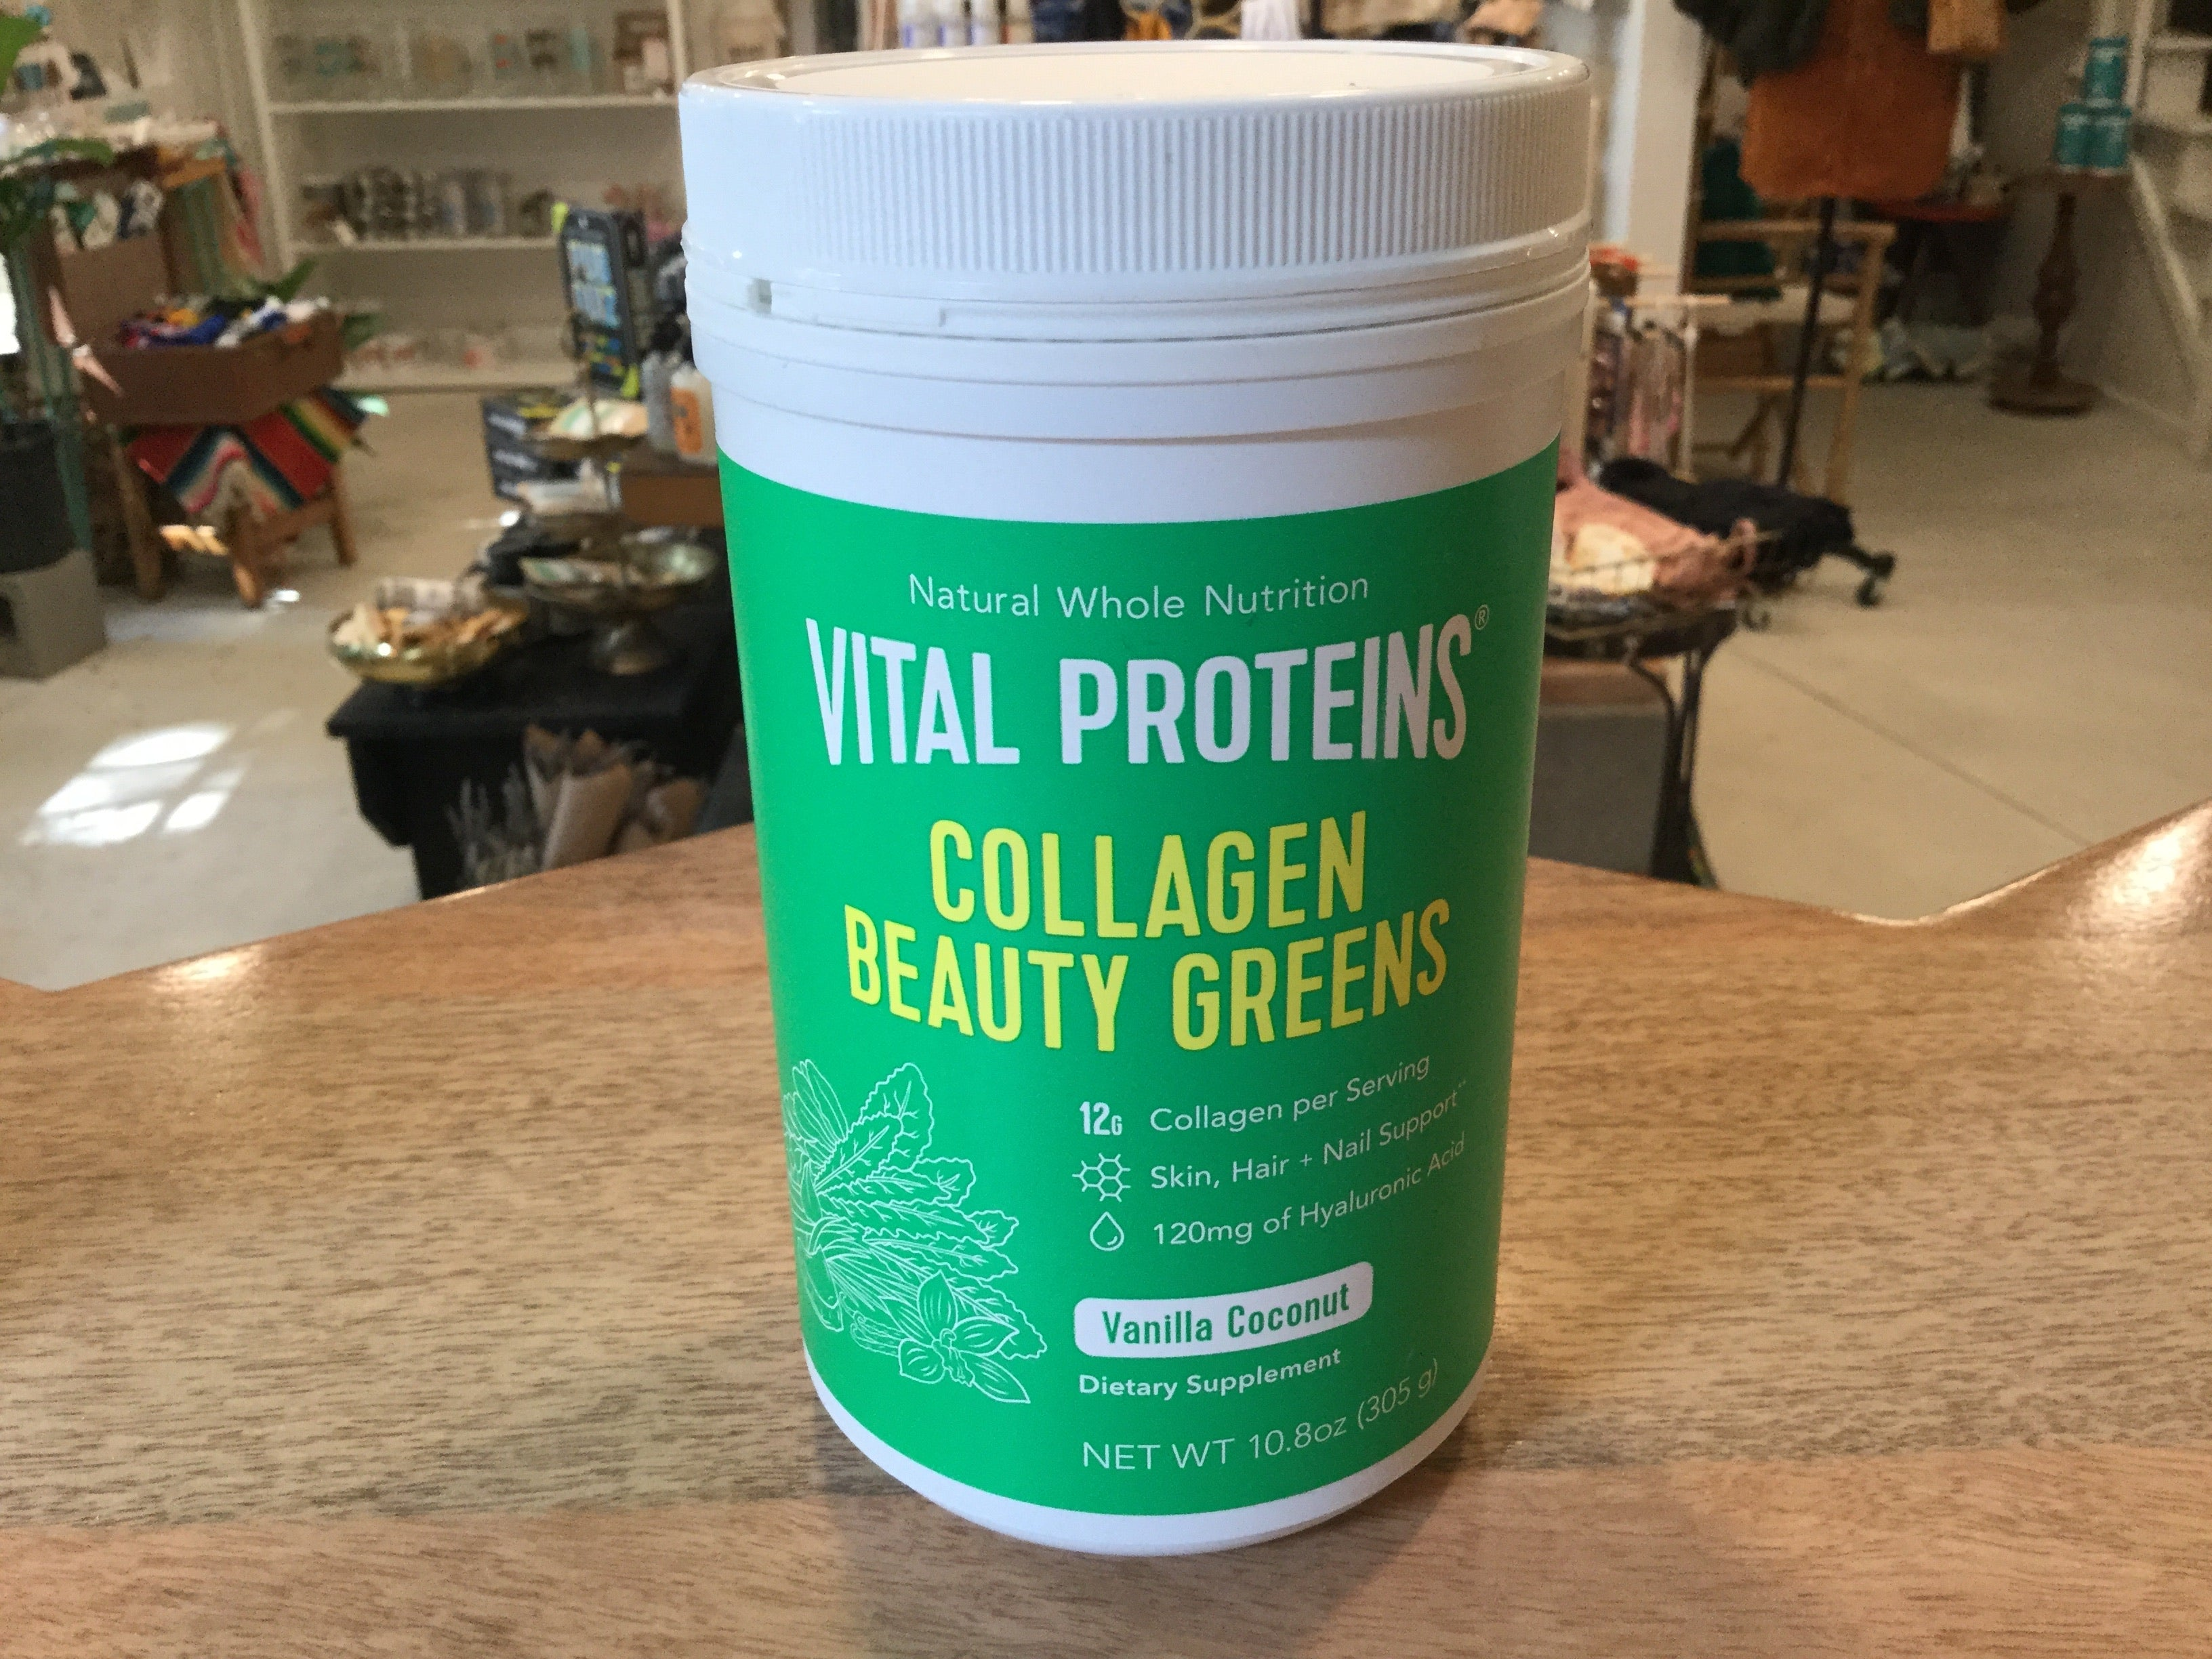 Vanilla Coconut Collagen Beauty Greens